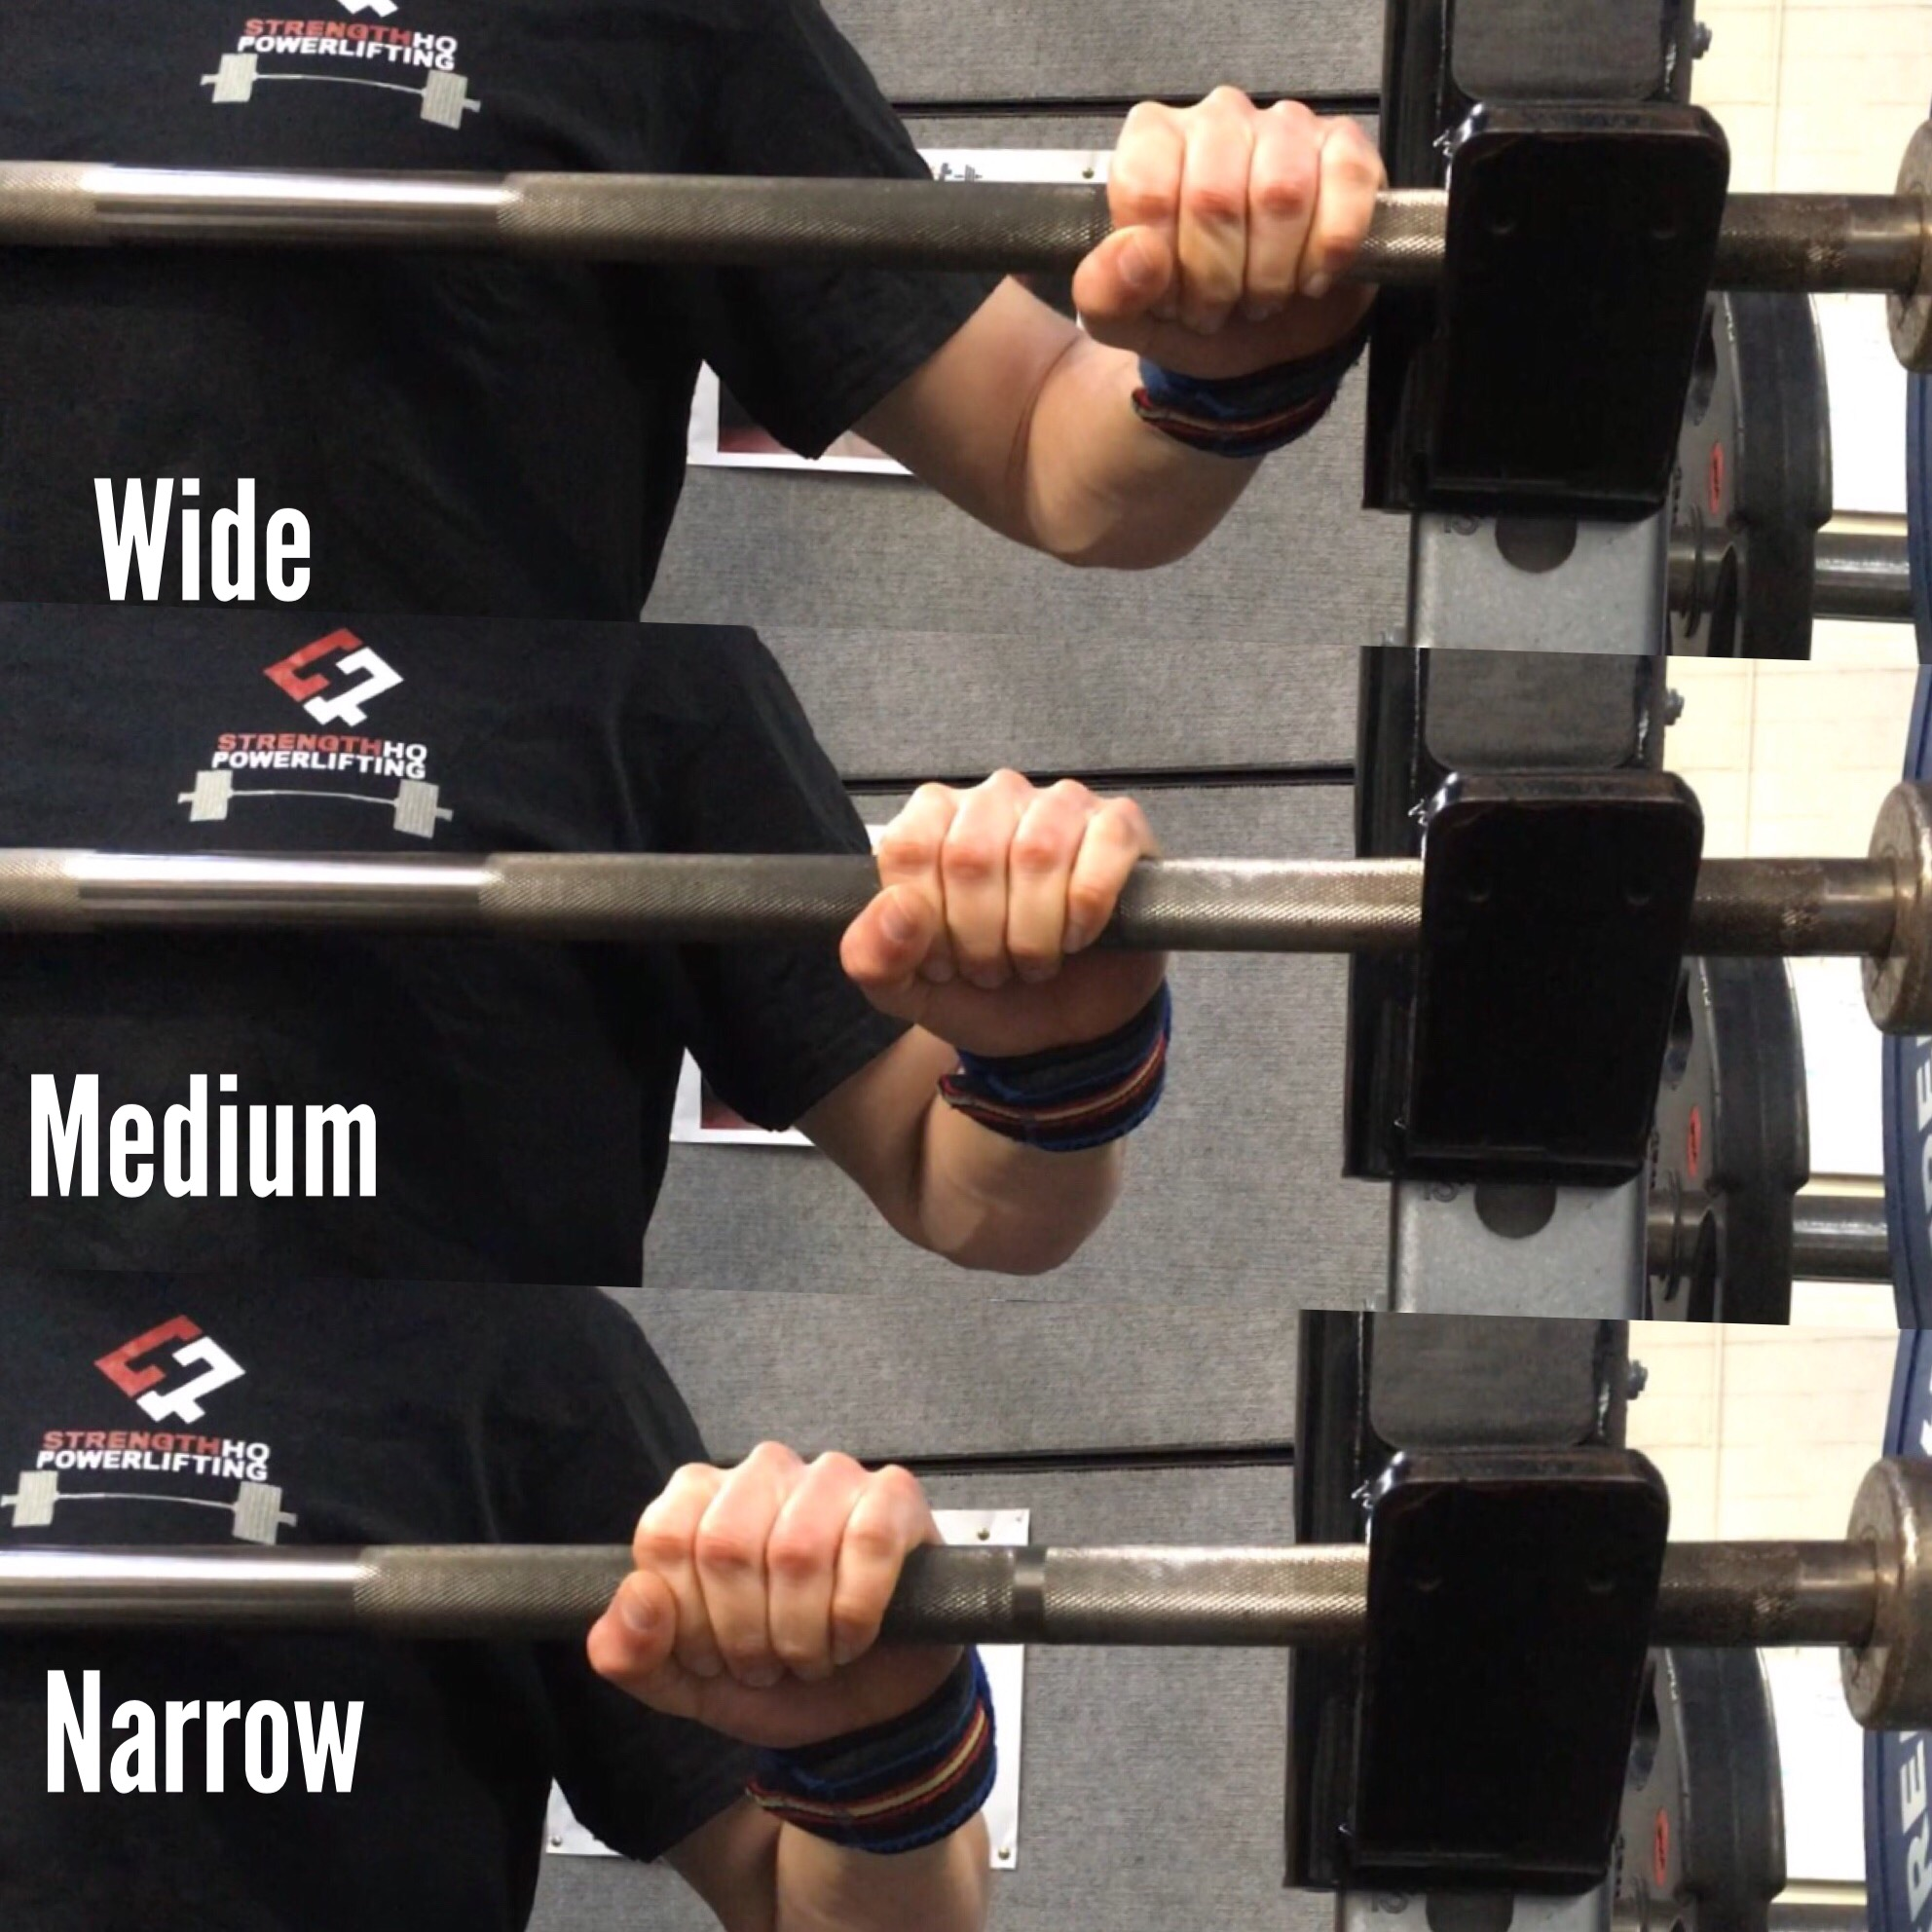 How Does Width Affect Muscle Activity Joint Angles